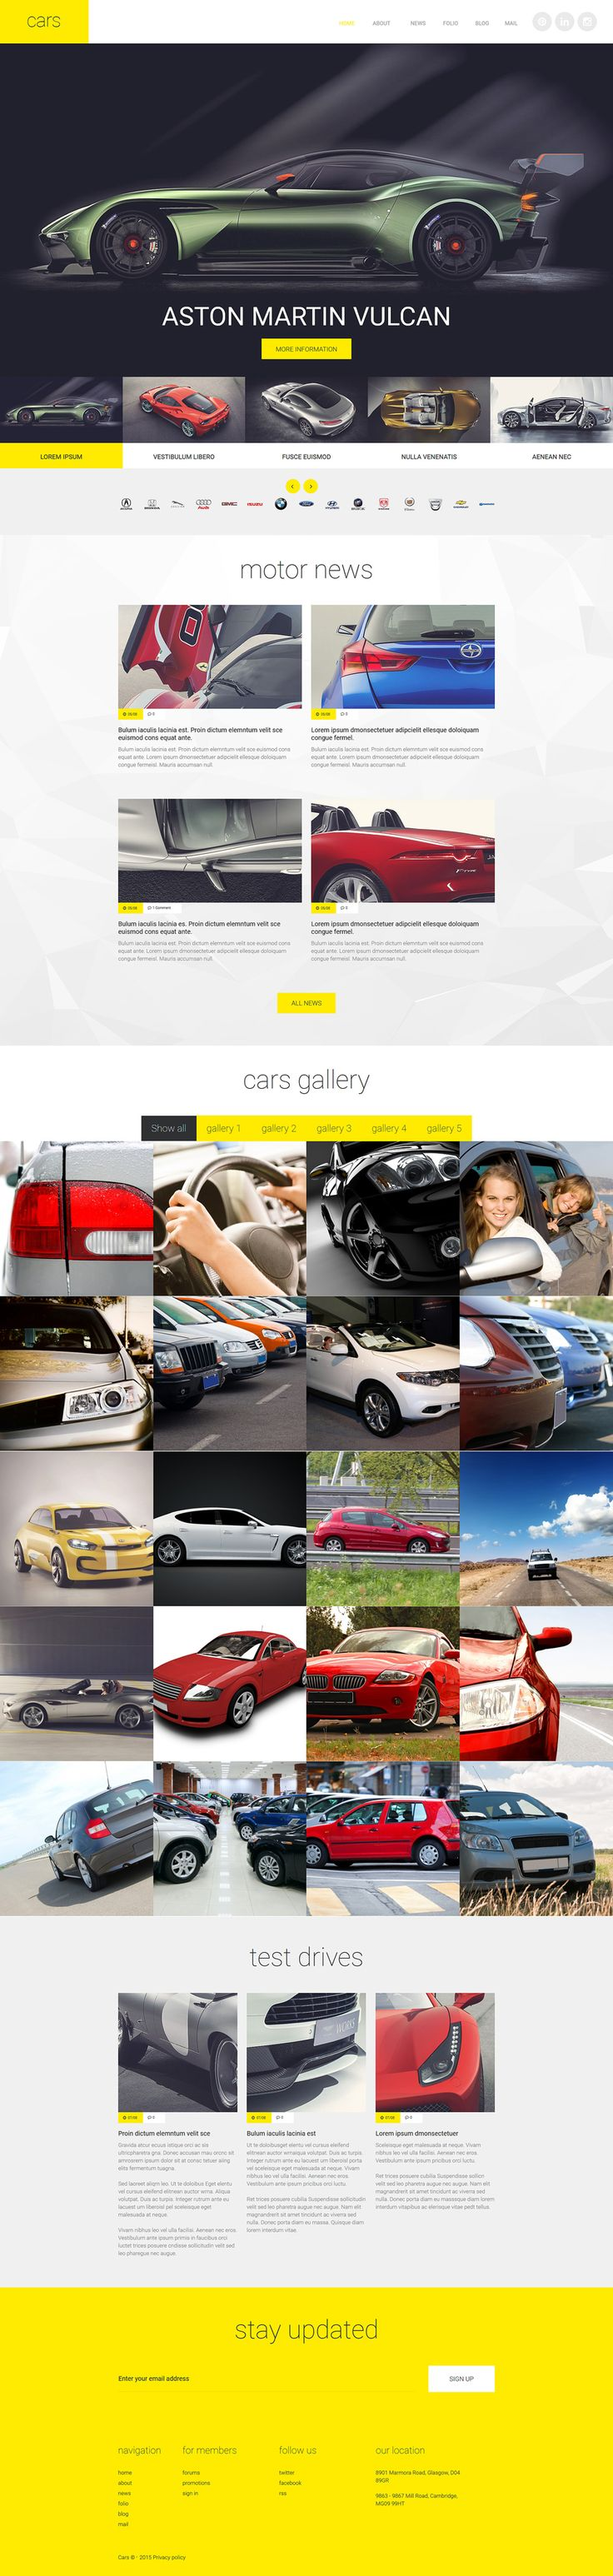 Car club template additional features comprehensive documentation and stock photos are included